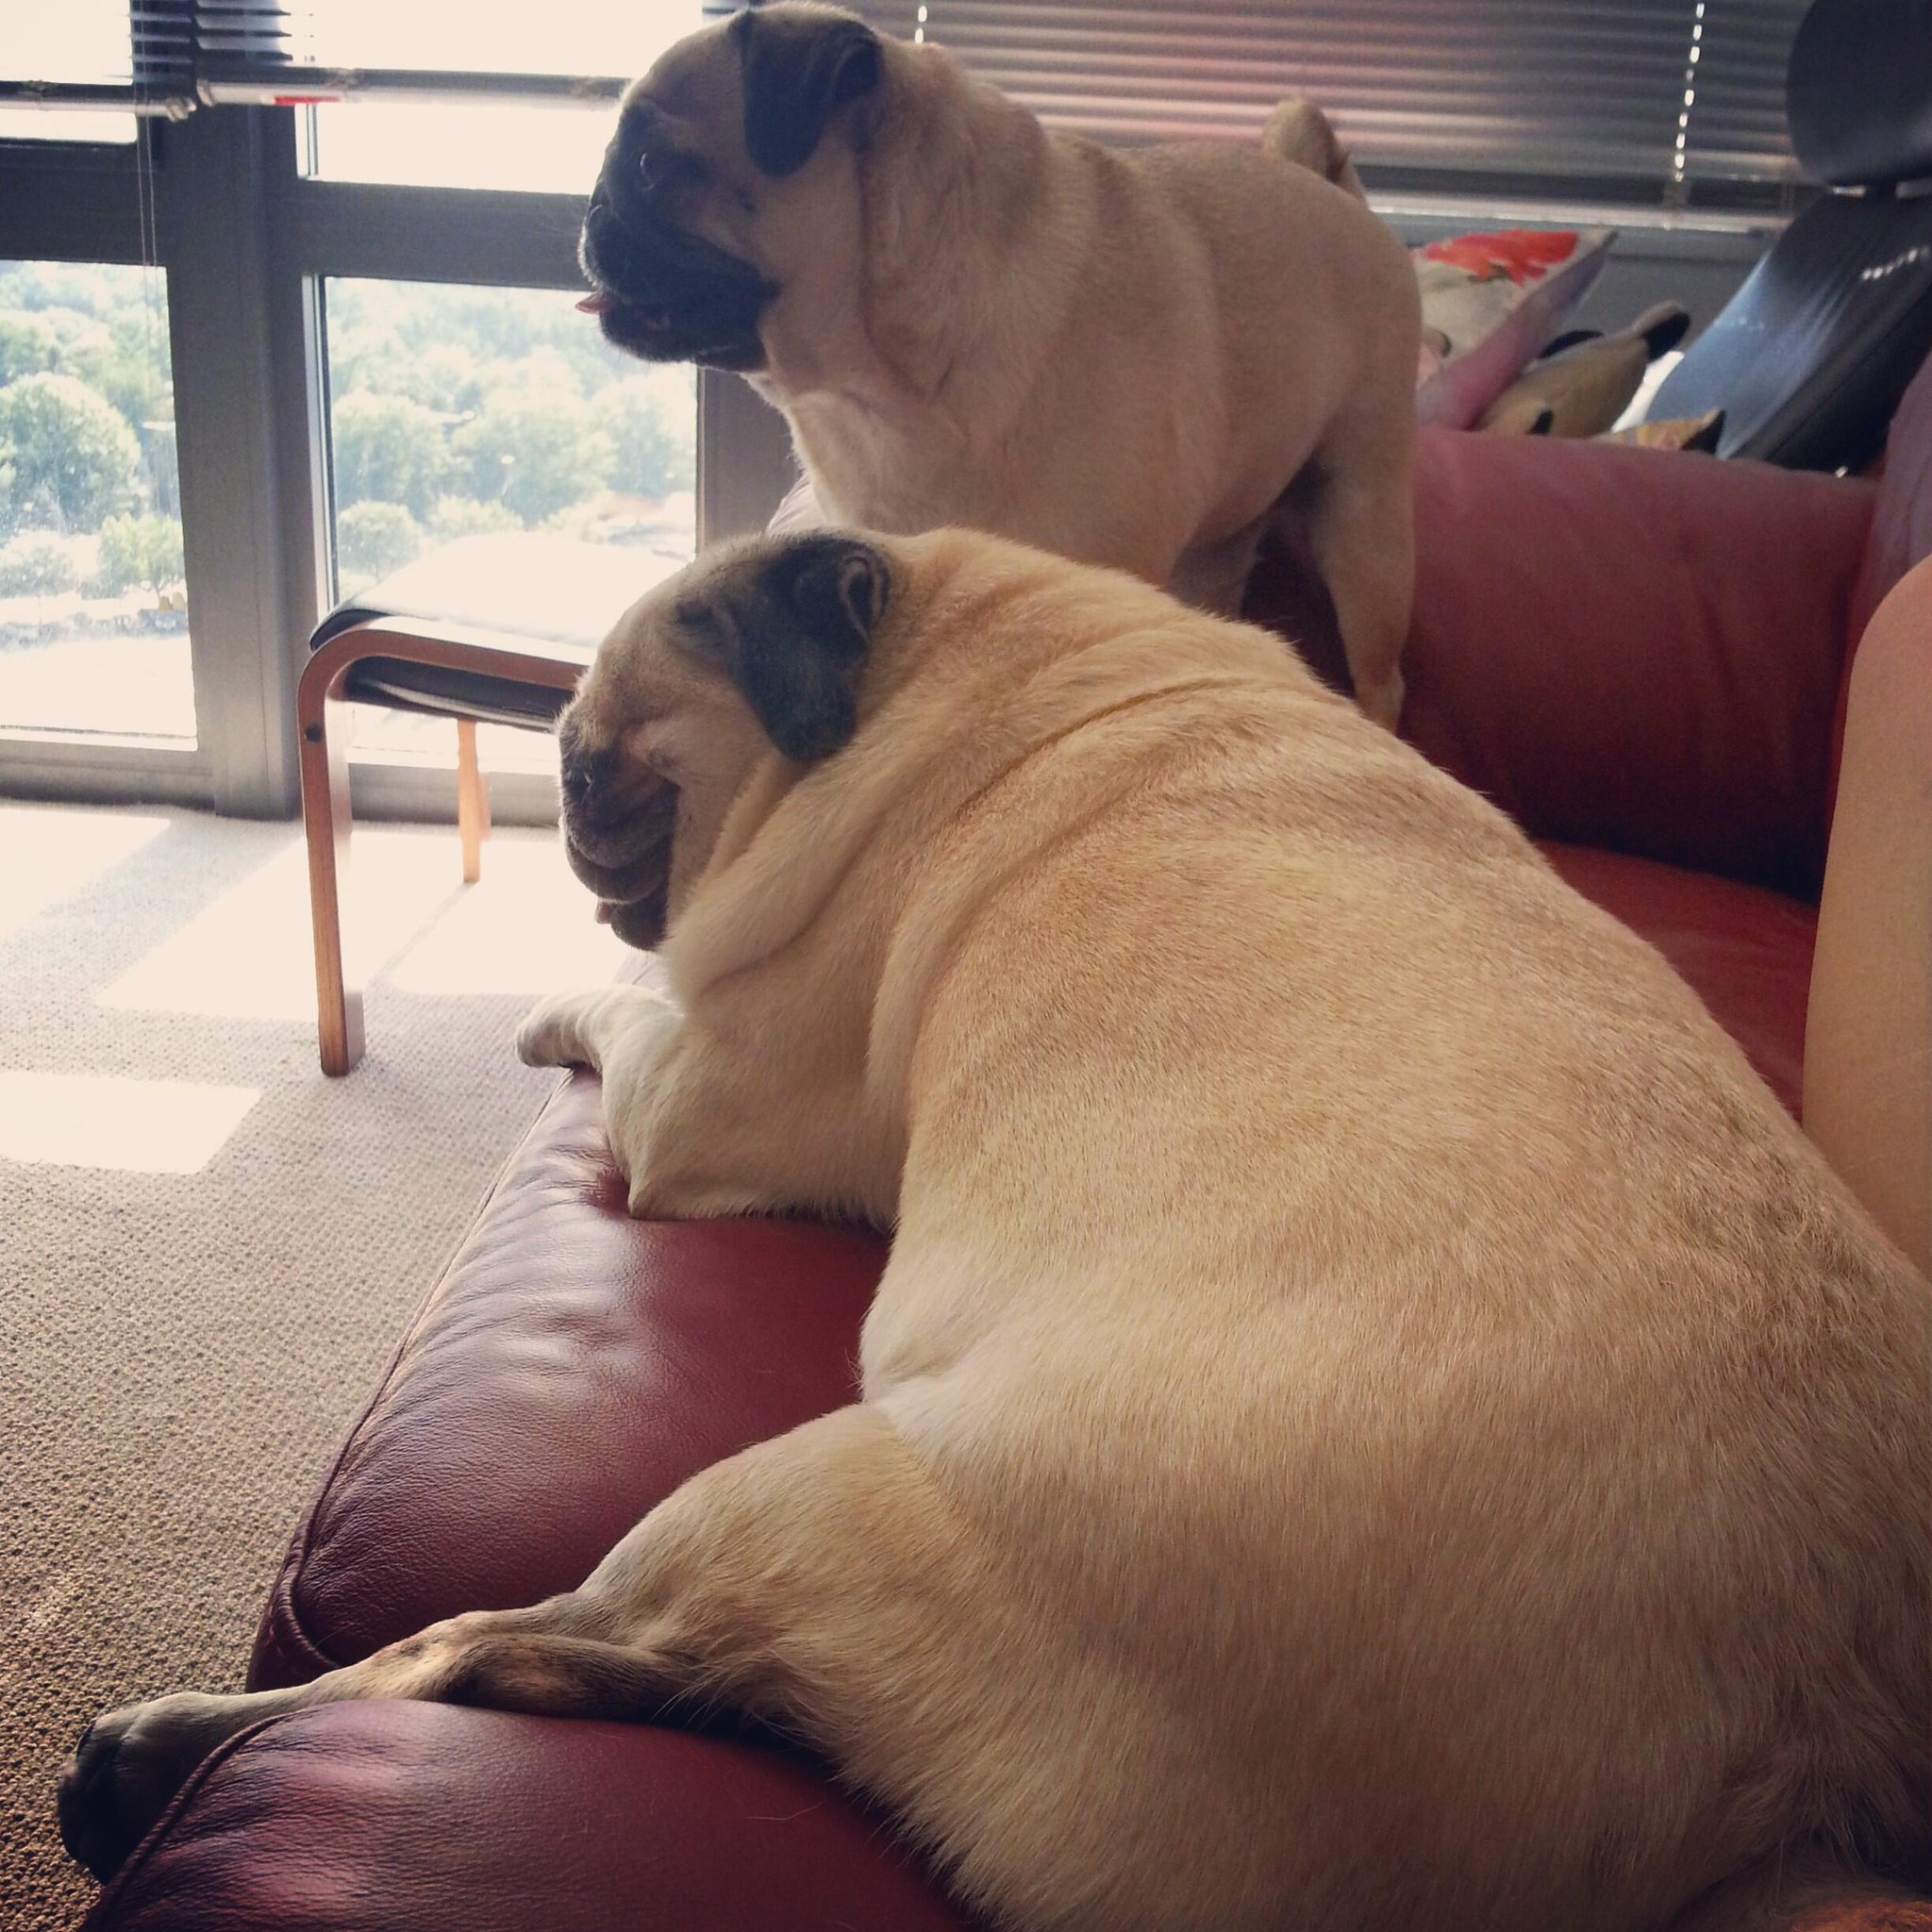 Melty pug is getting stuck in the sofa http://t.co/3NkhoyFc16